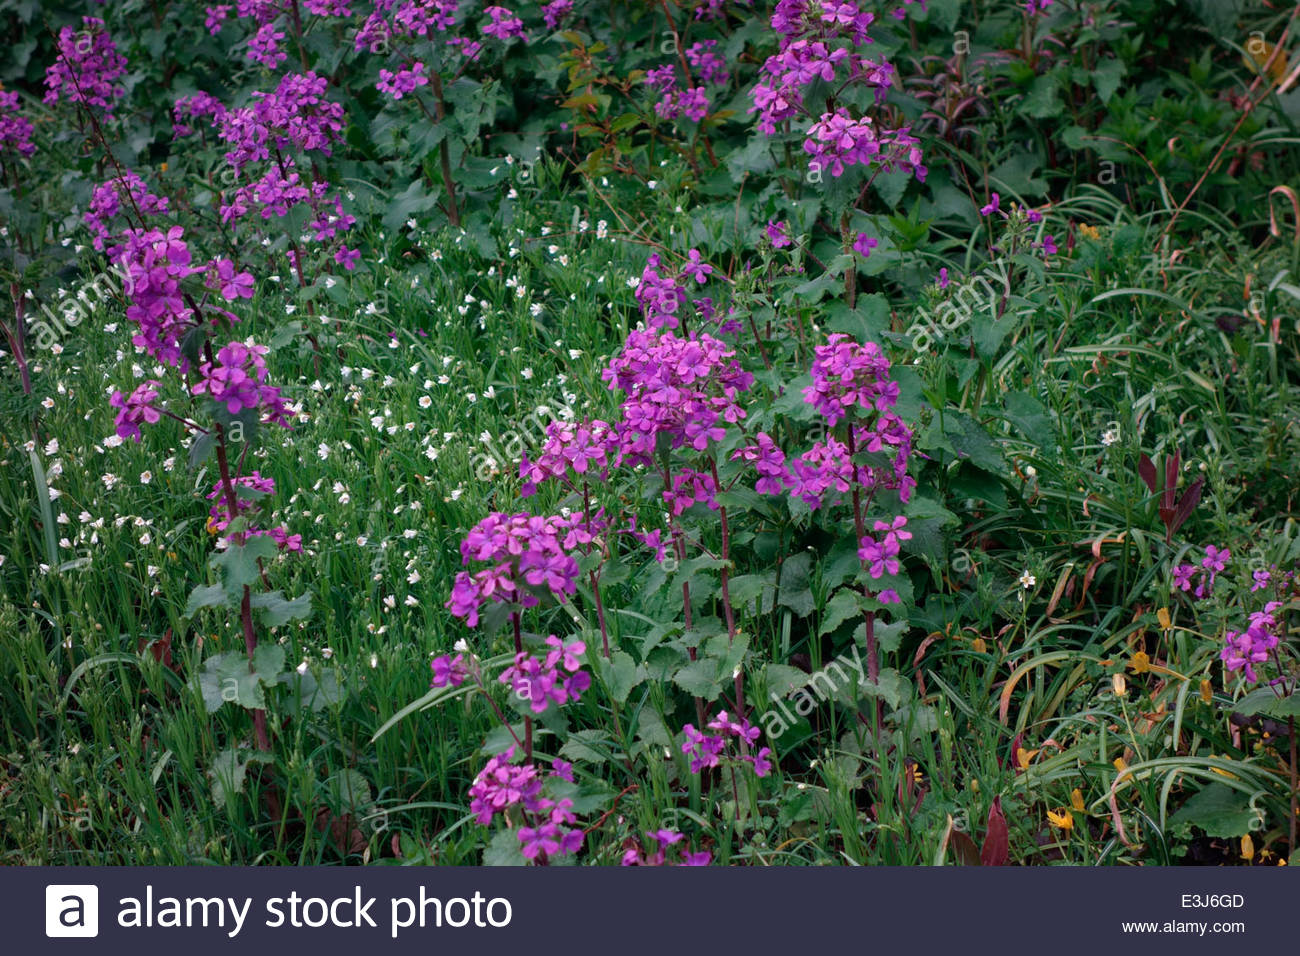 Lunaria Stock Photos & Lunaria Stock Images.